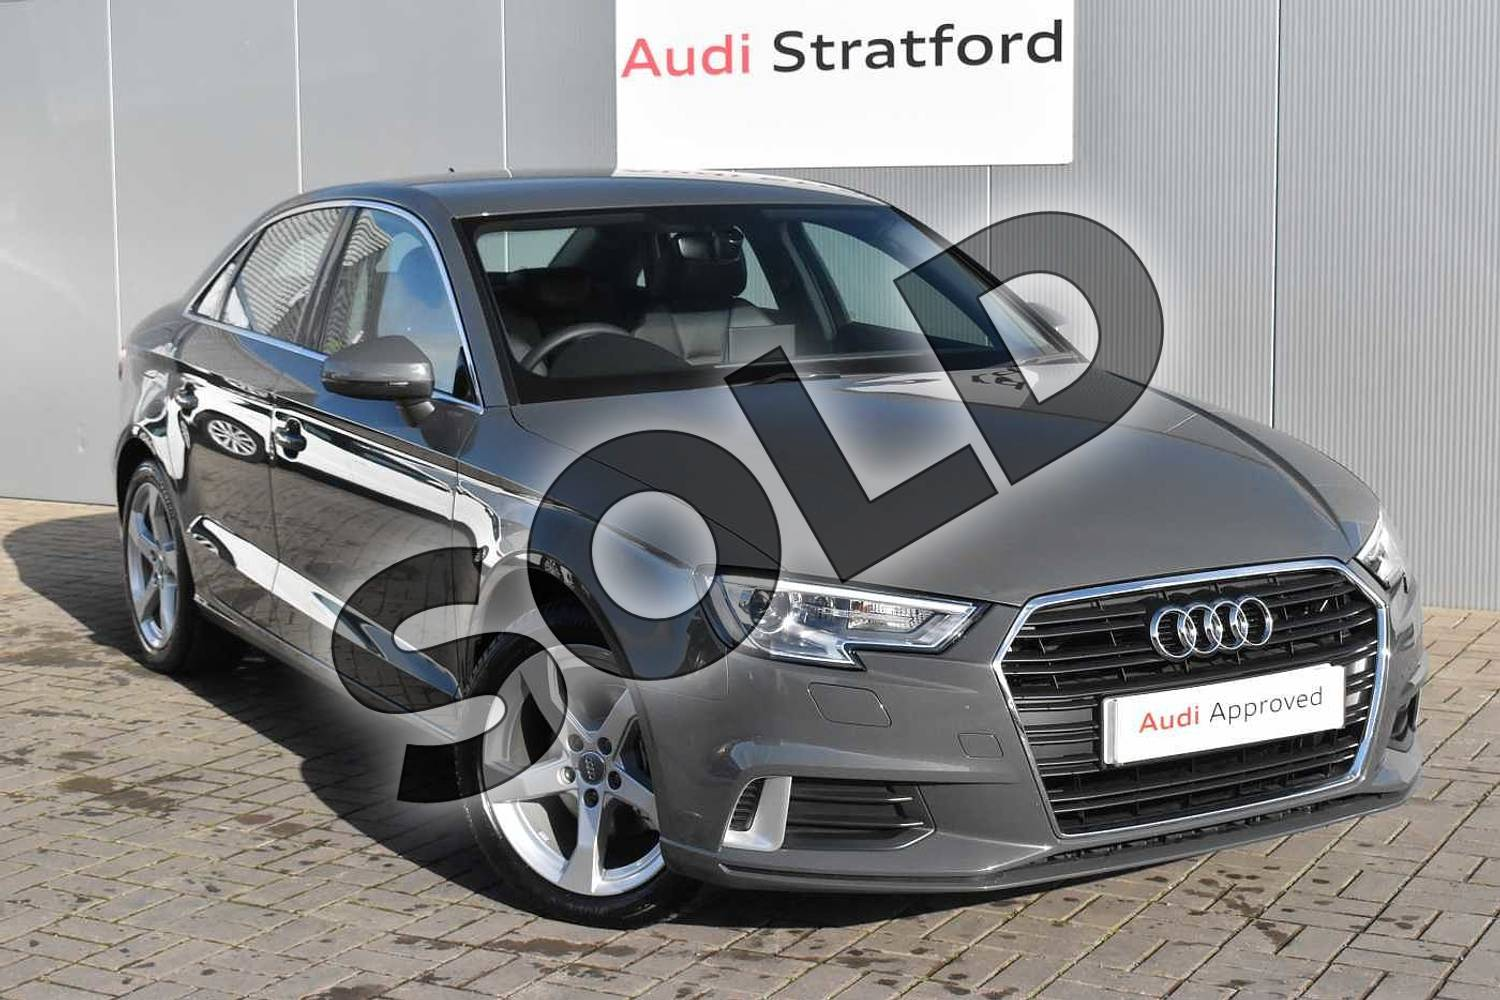 2020 Audi A3 Diesel Saloon 35 TDI Sport 4dr in Nano Grey Metallic at Stratford Audi